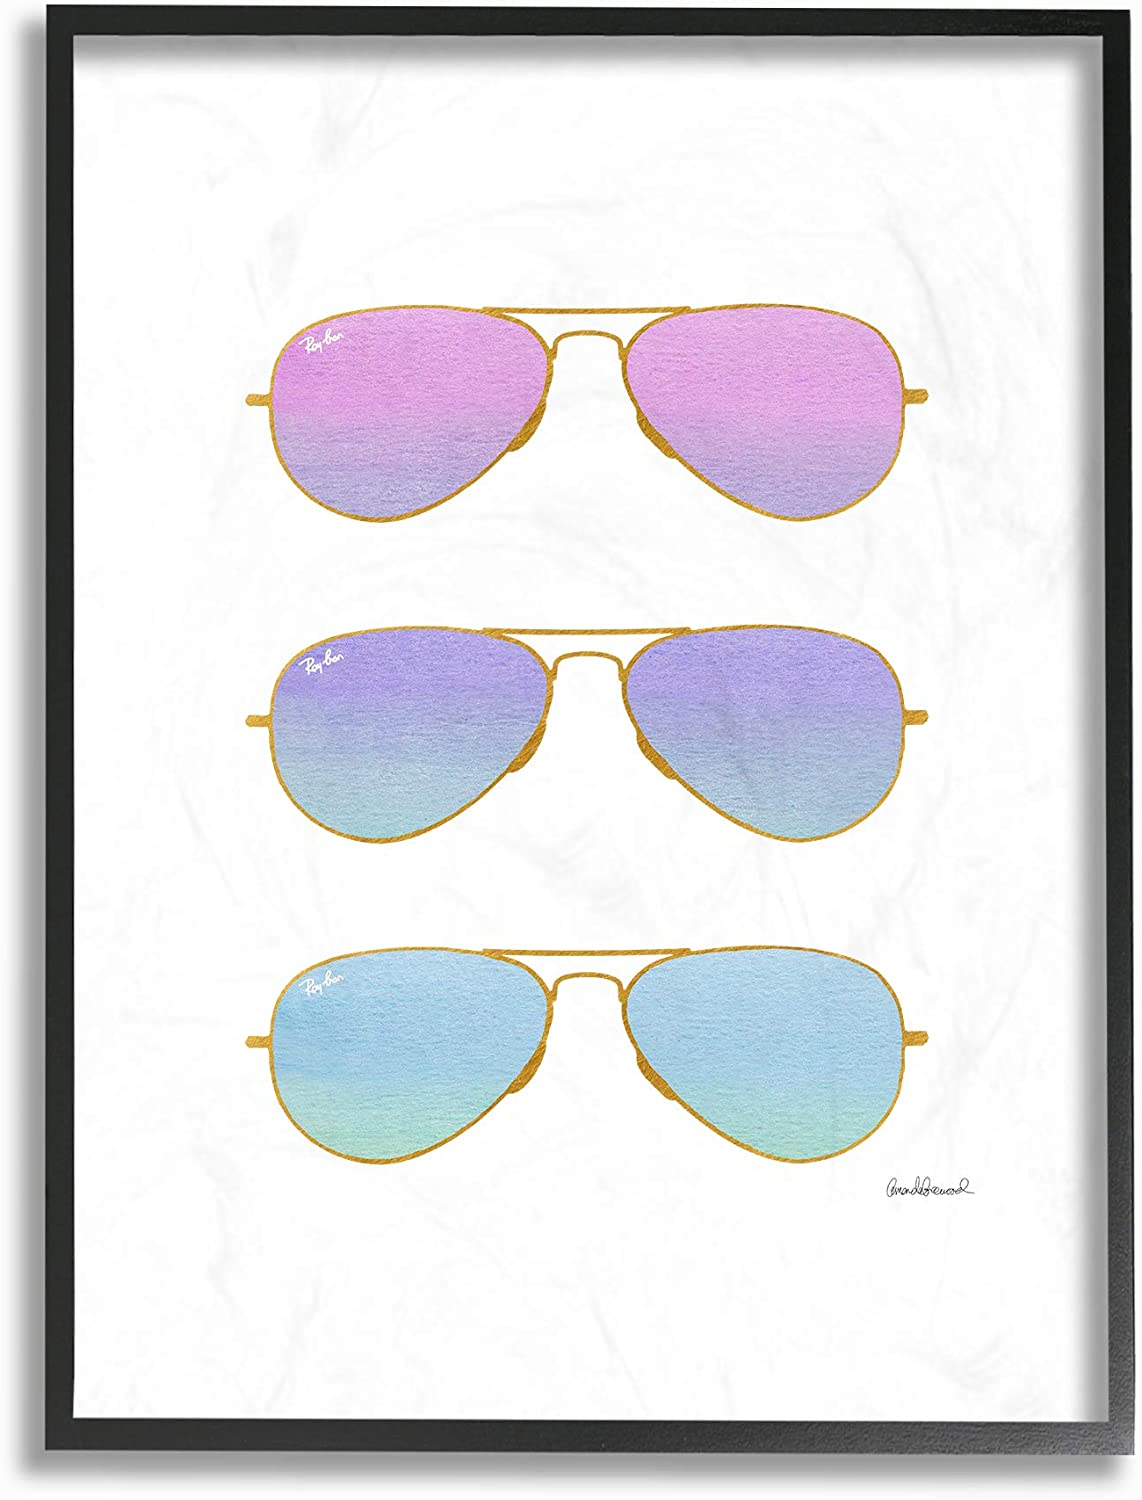 Stupell Industries Home Pink Purple and bluee Sunset Ombre Aviator Sunglasses Framed Giclee Texturized Art, Multi-color